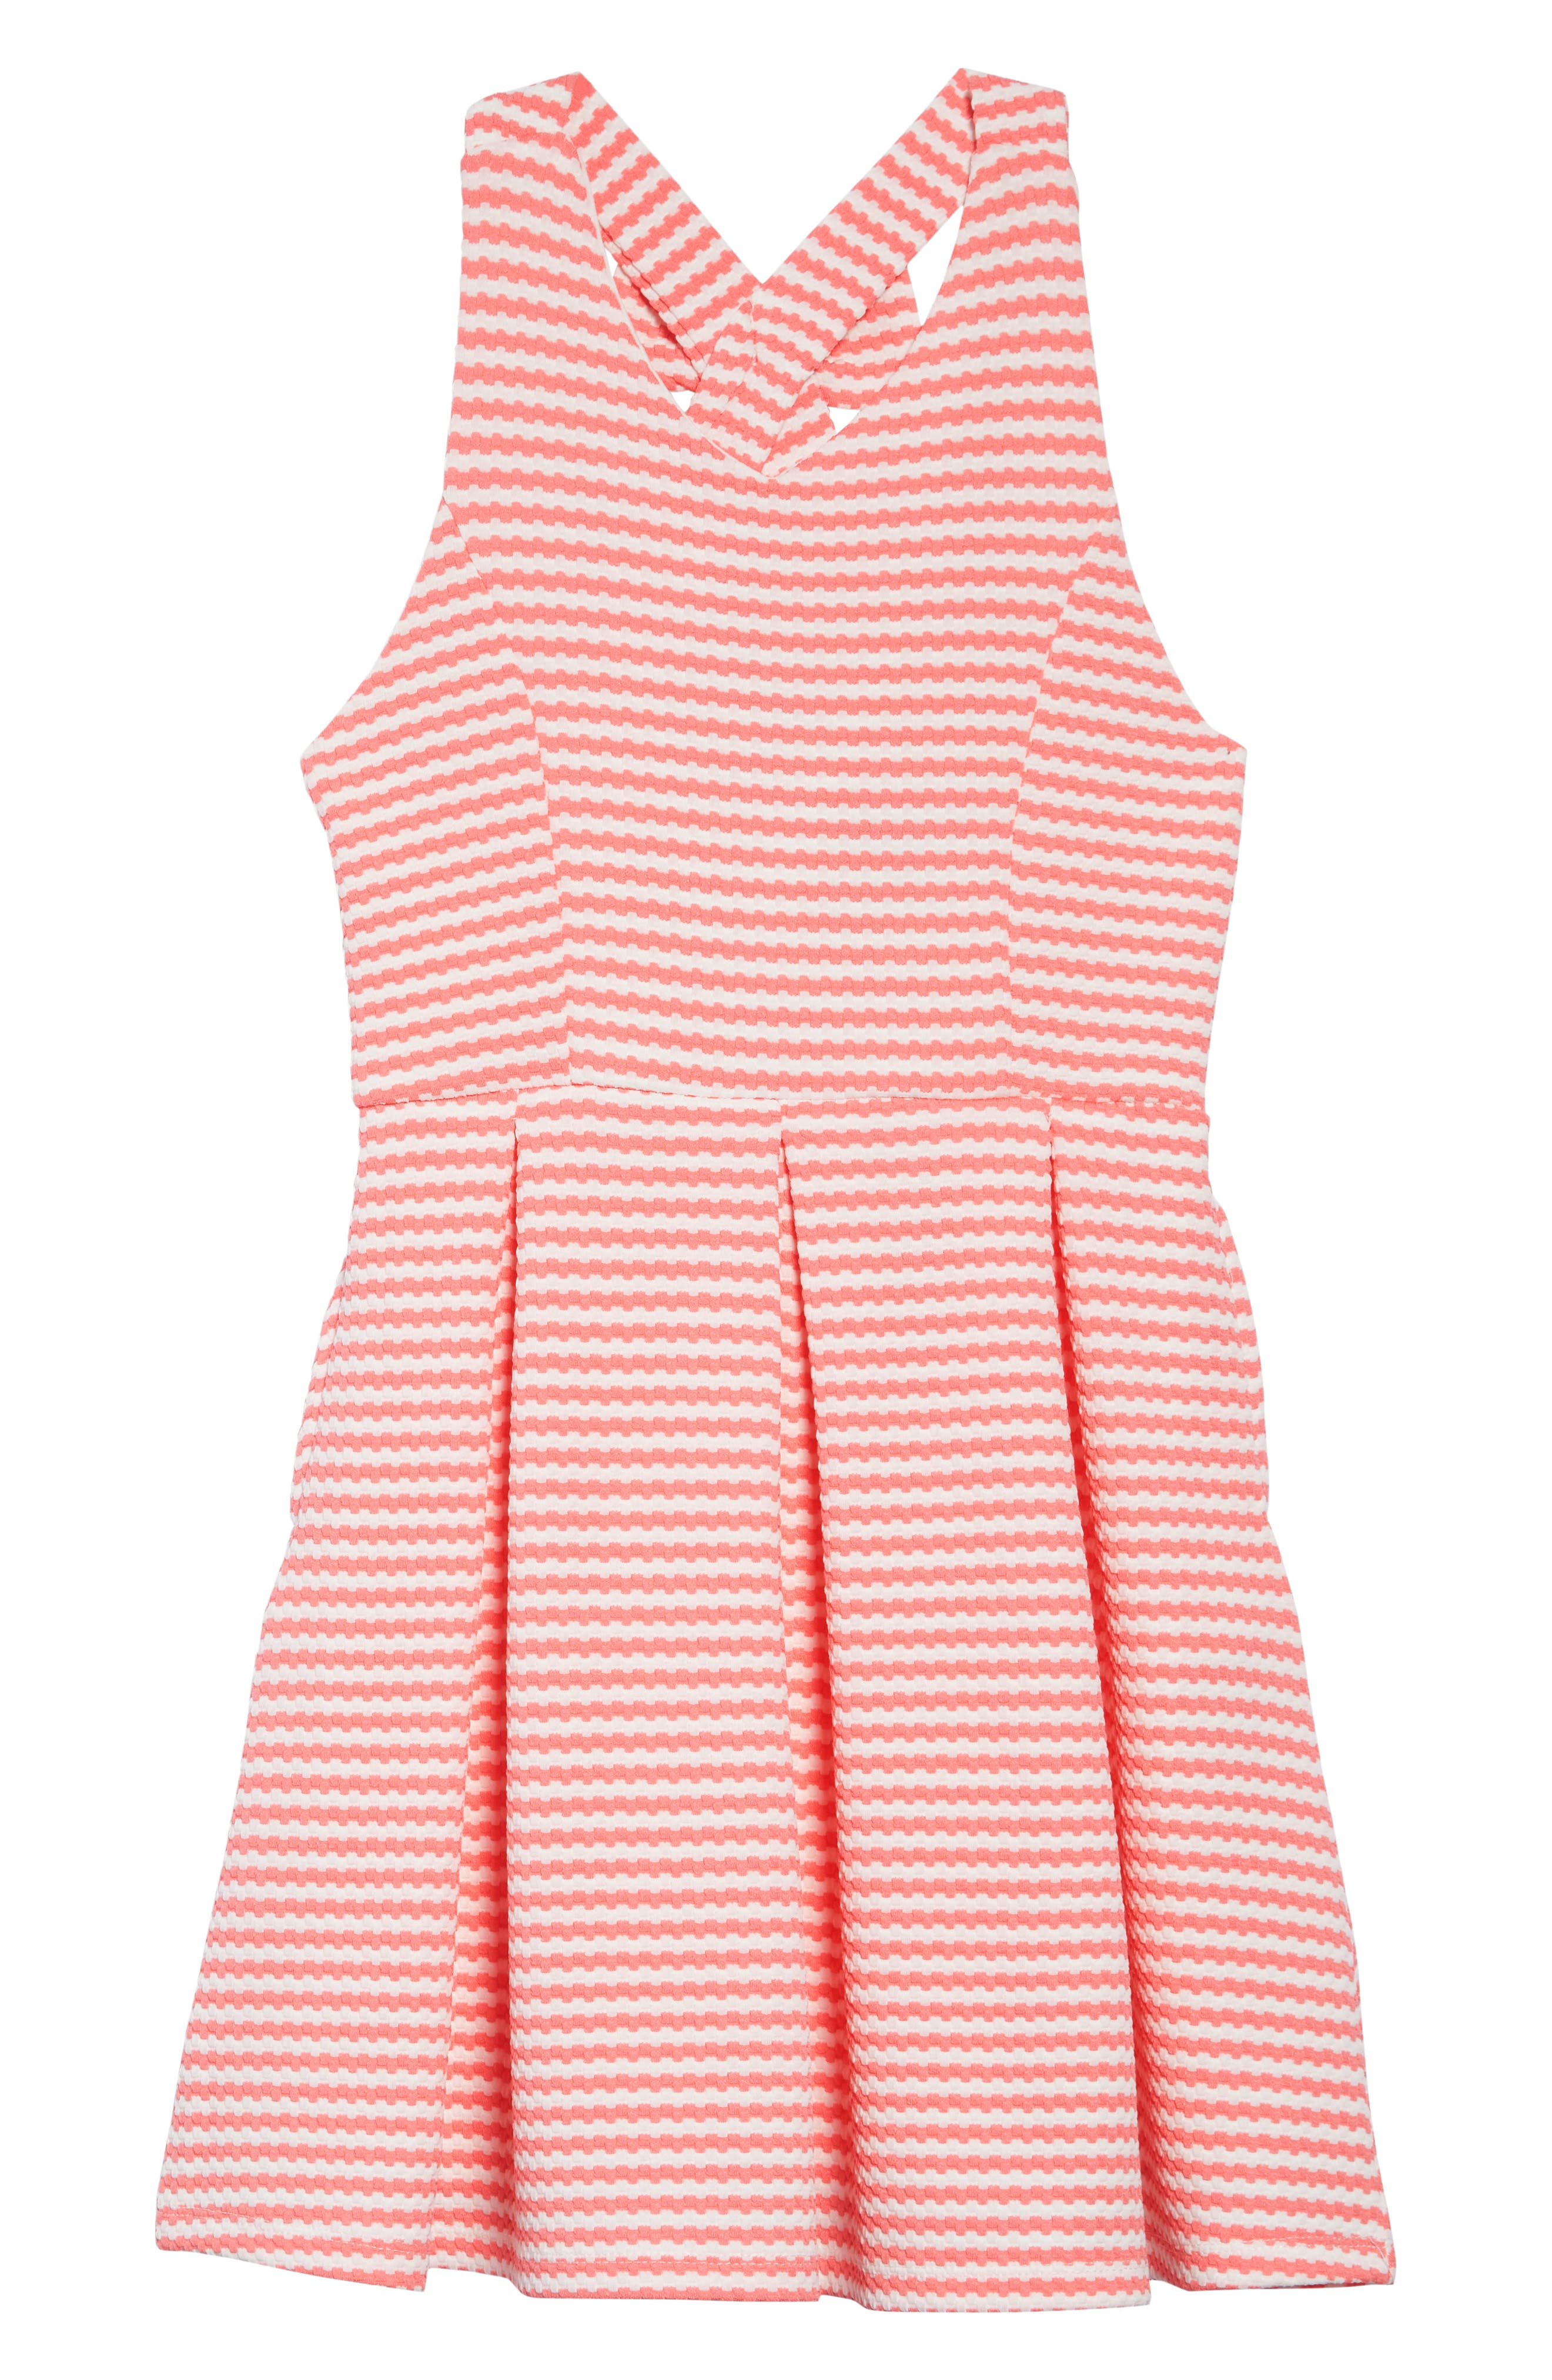 AVA & YELLY, Stripe Bow Back Skater Dress, Main thumbnail 1, color, 950